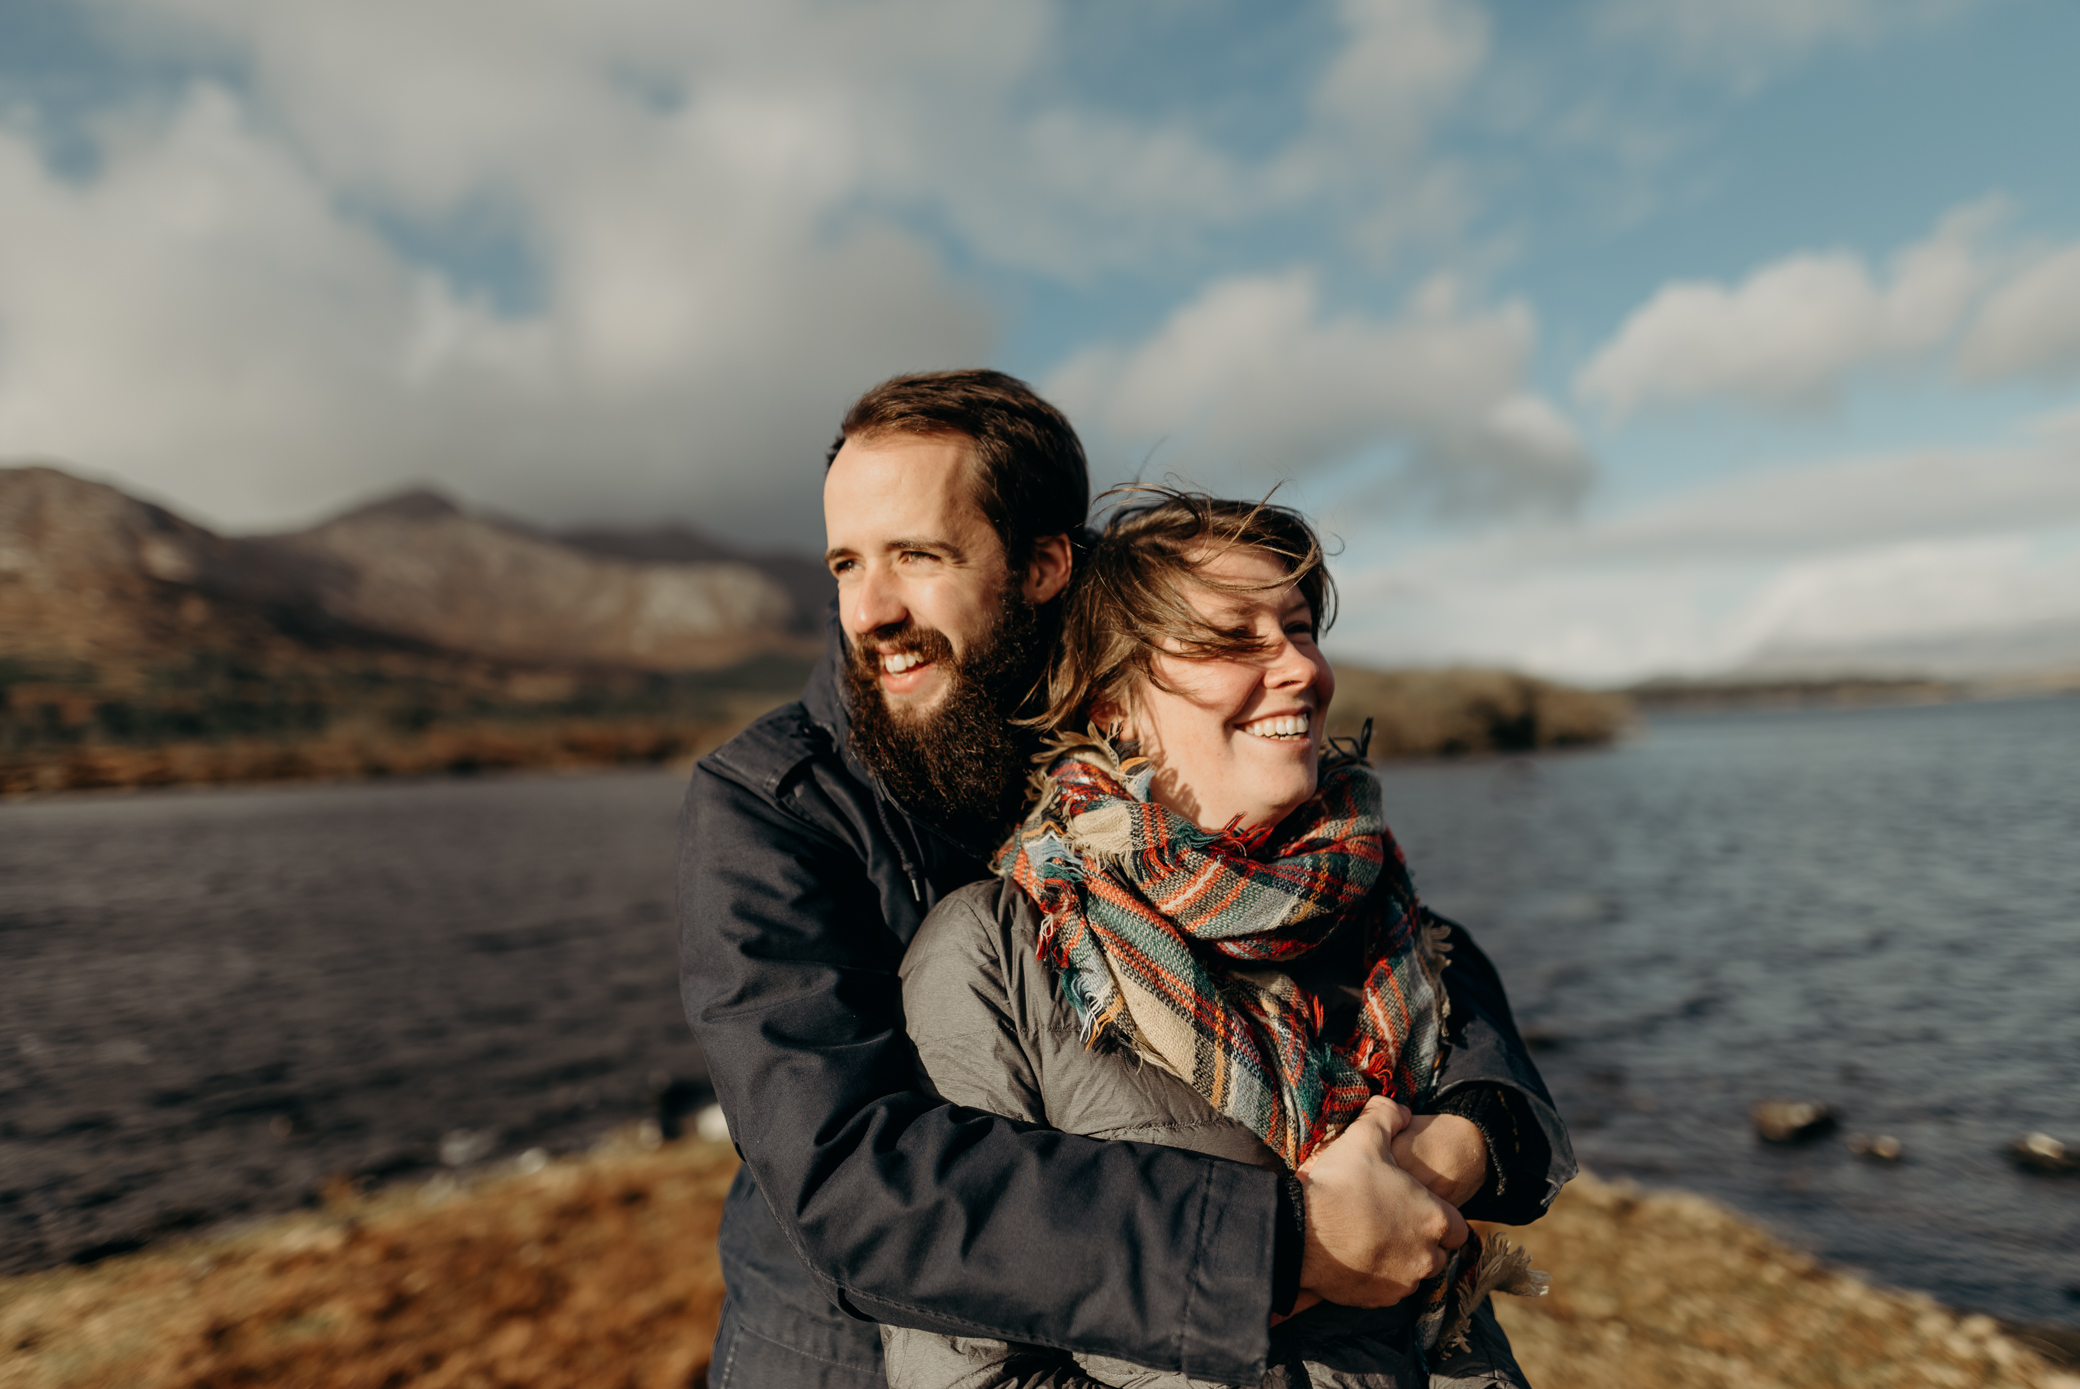 Connemara Elopement - Irish Wedding Photographer - Elopement Ireland-11.jpg